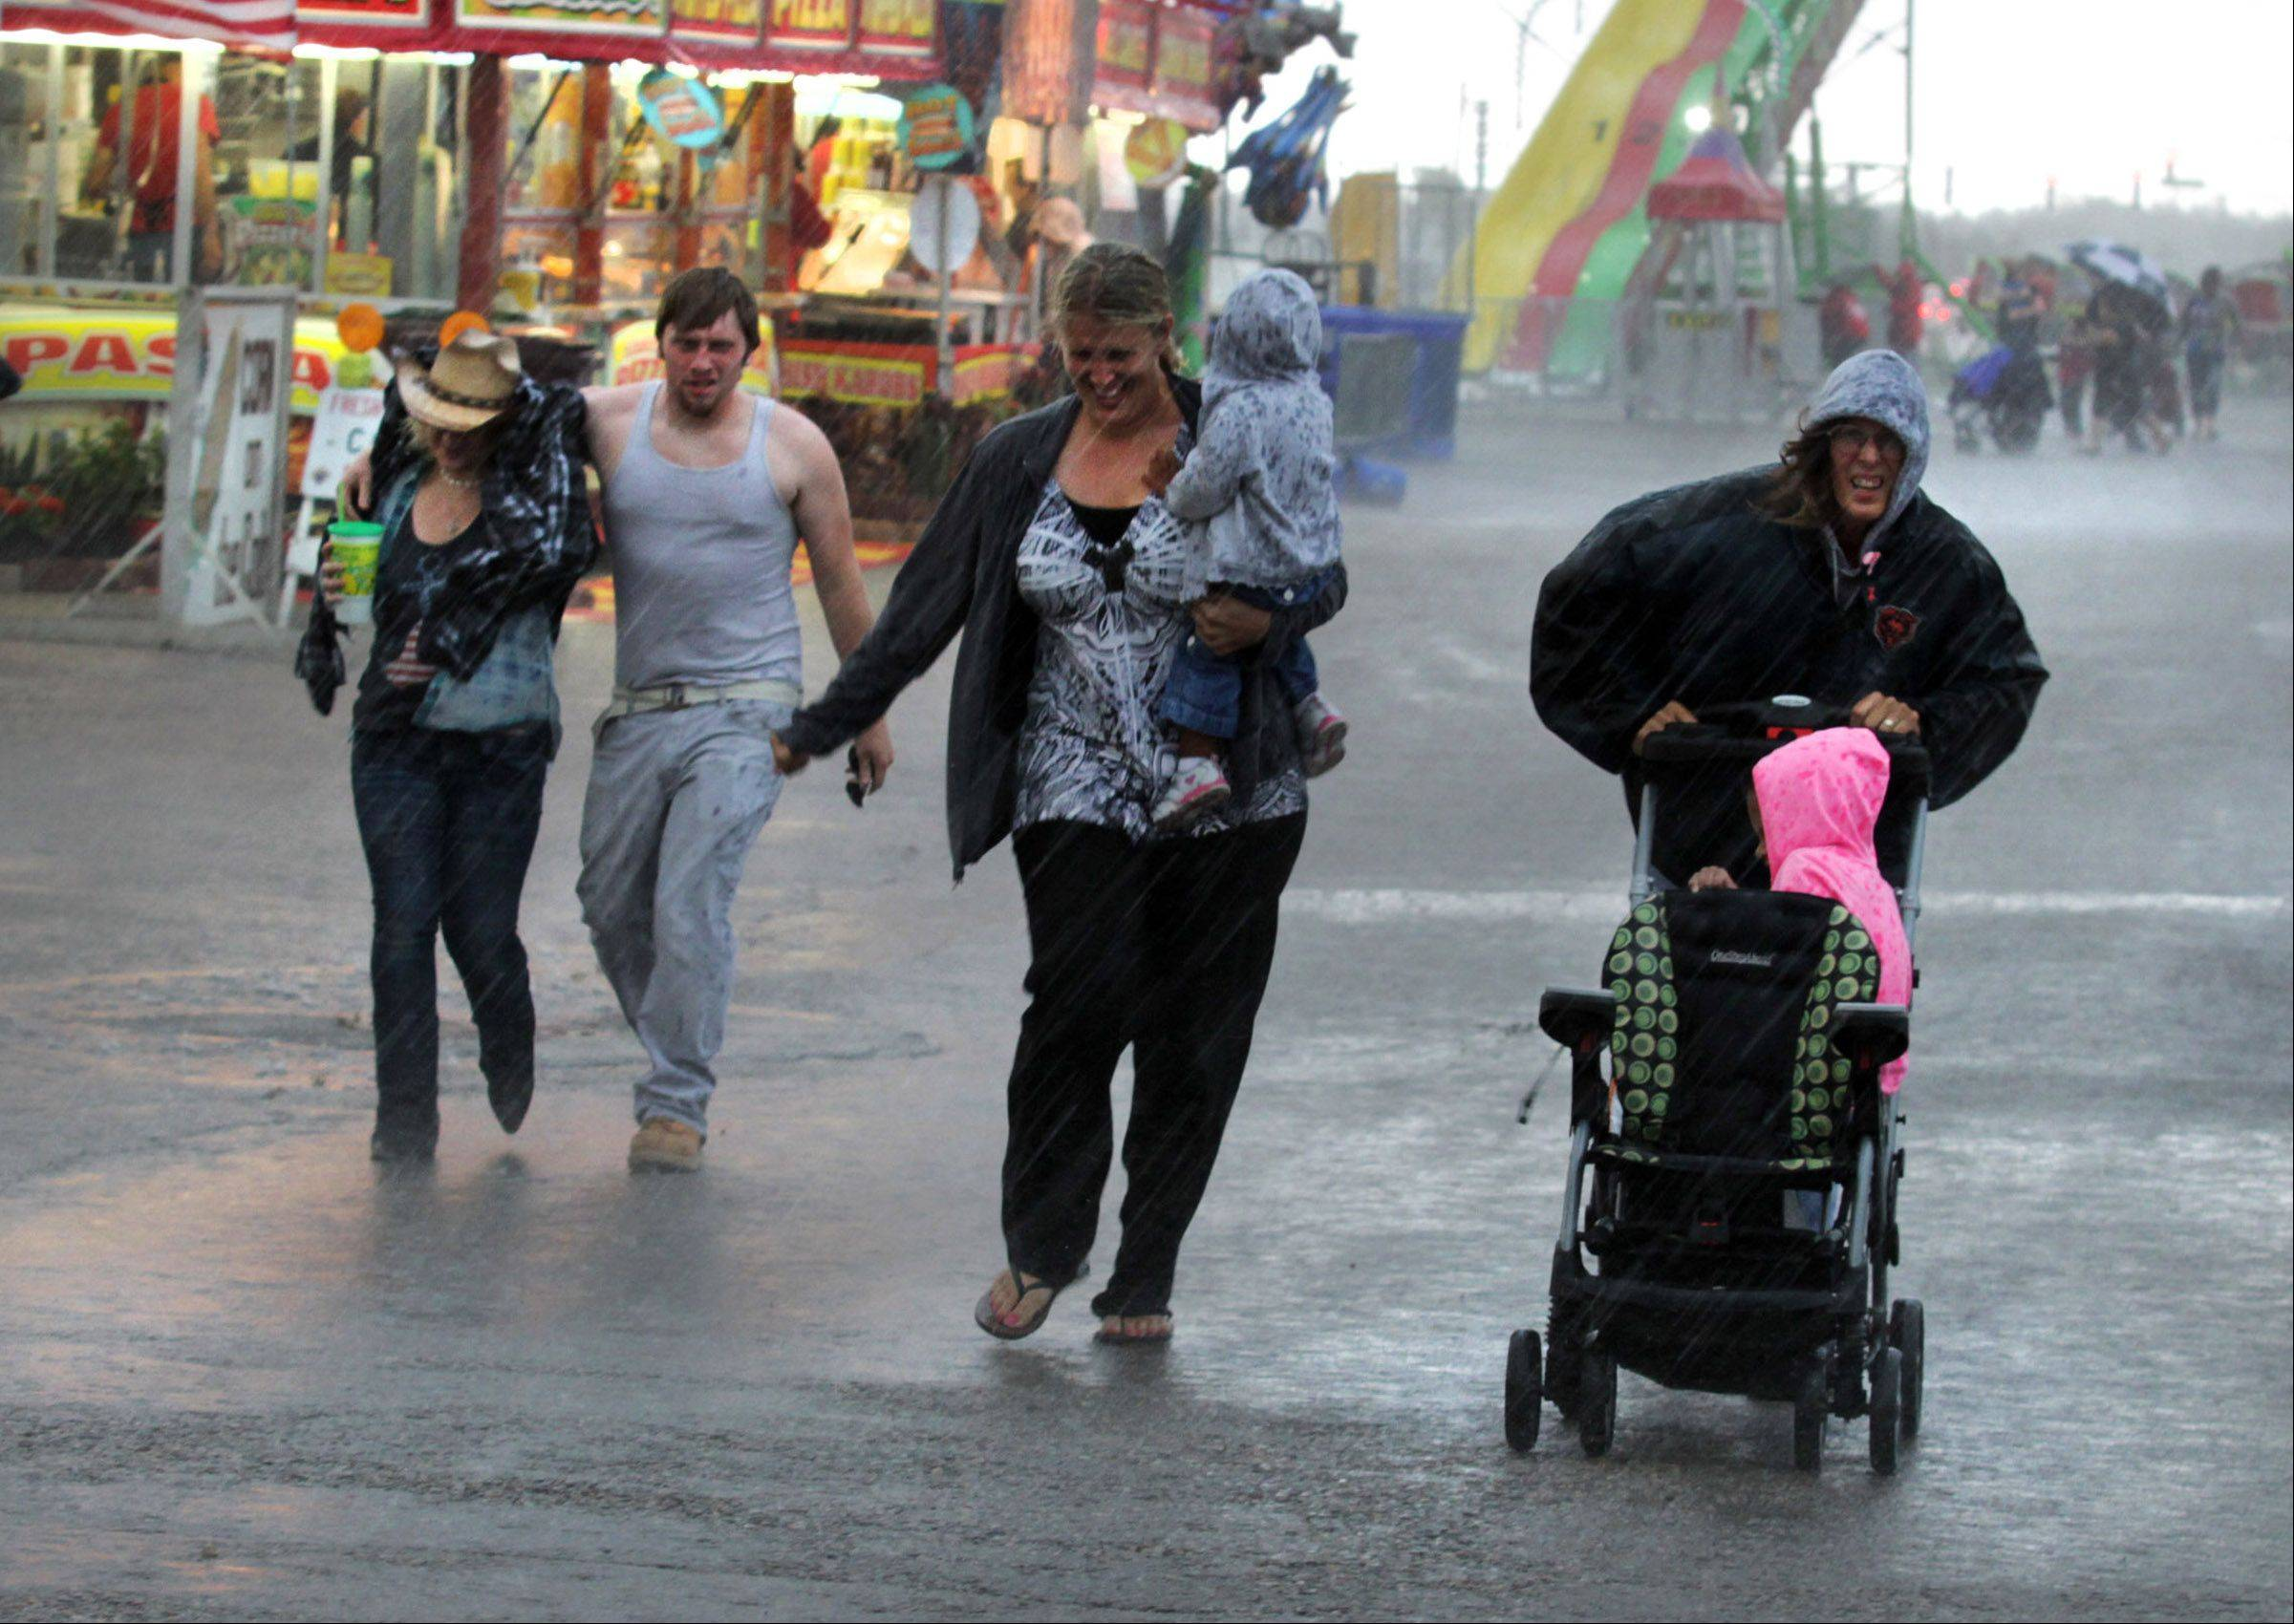 Visitors run for cover as heavy rain falls on July 26 at the Lake County Fair in Grayslake. The antique tractor parade, Midwest Truck and Tractor Pull, Battle of the Barns, and main stage bands were canceled due to weather.